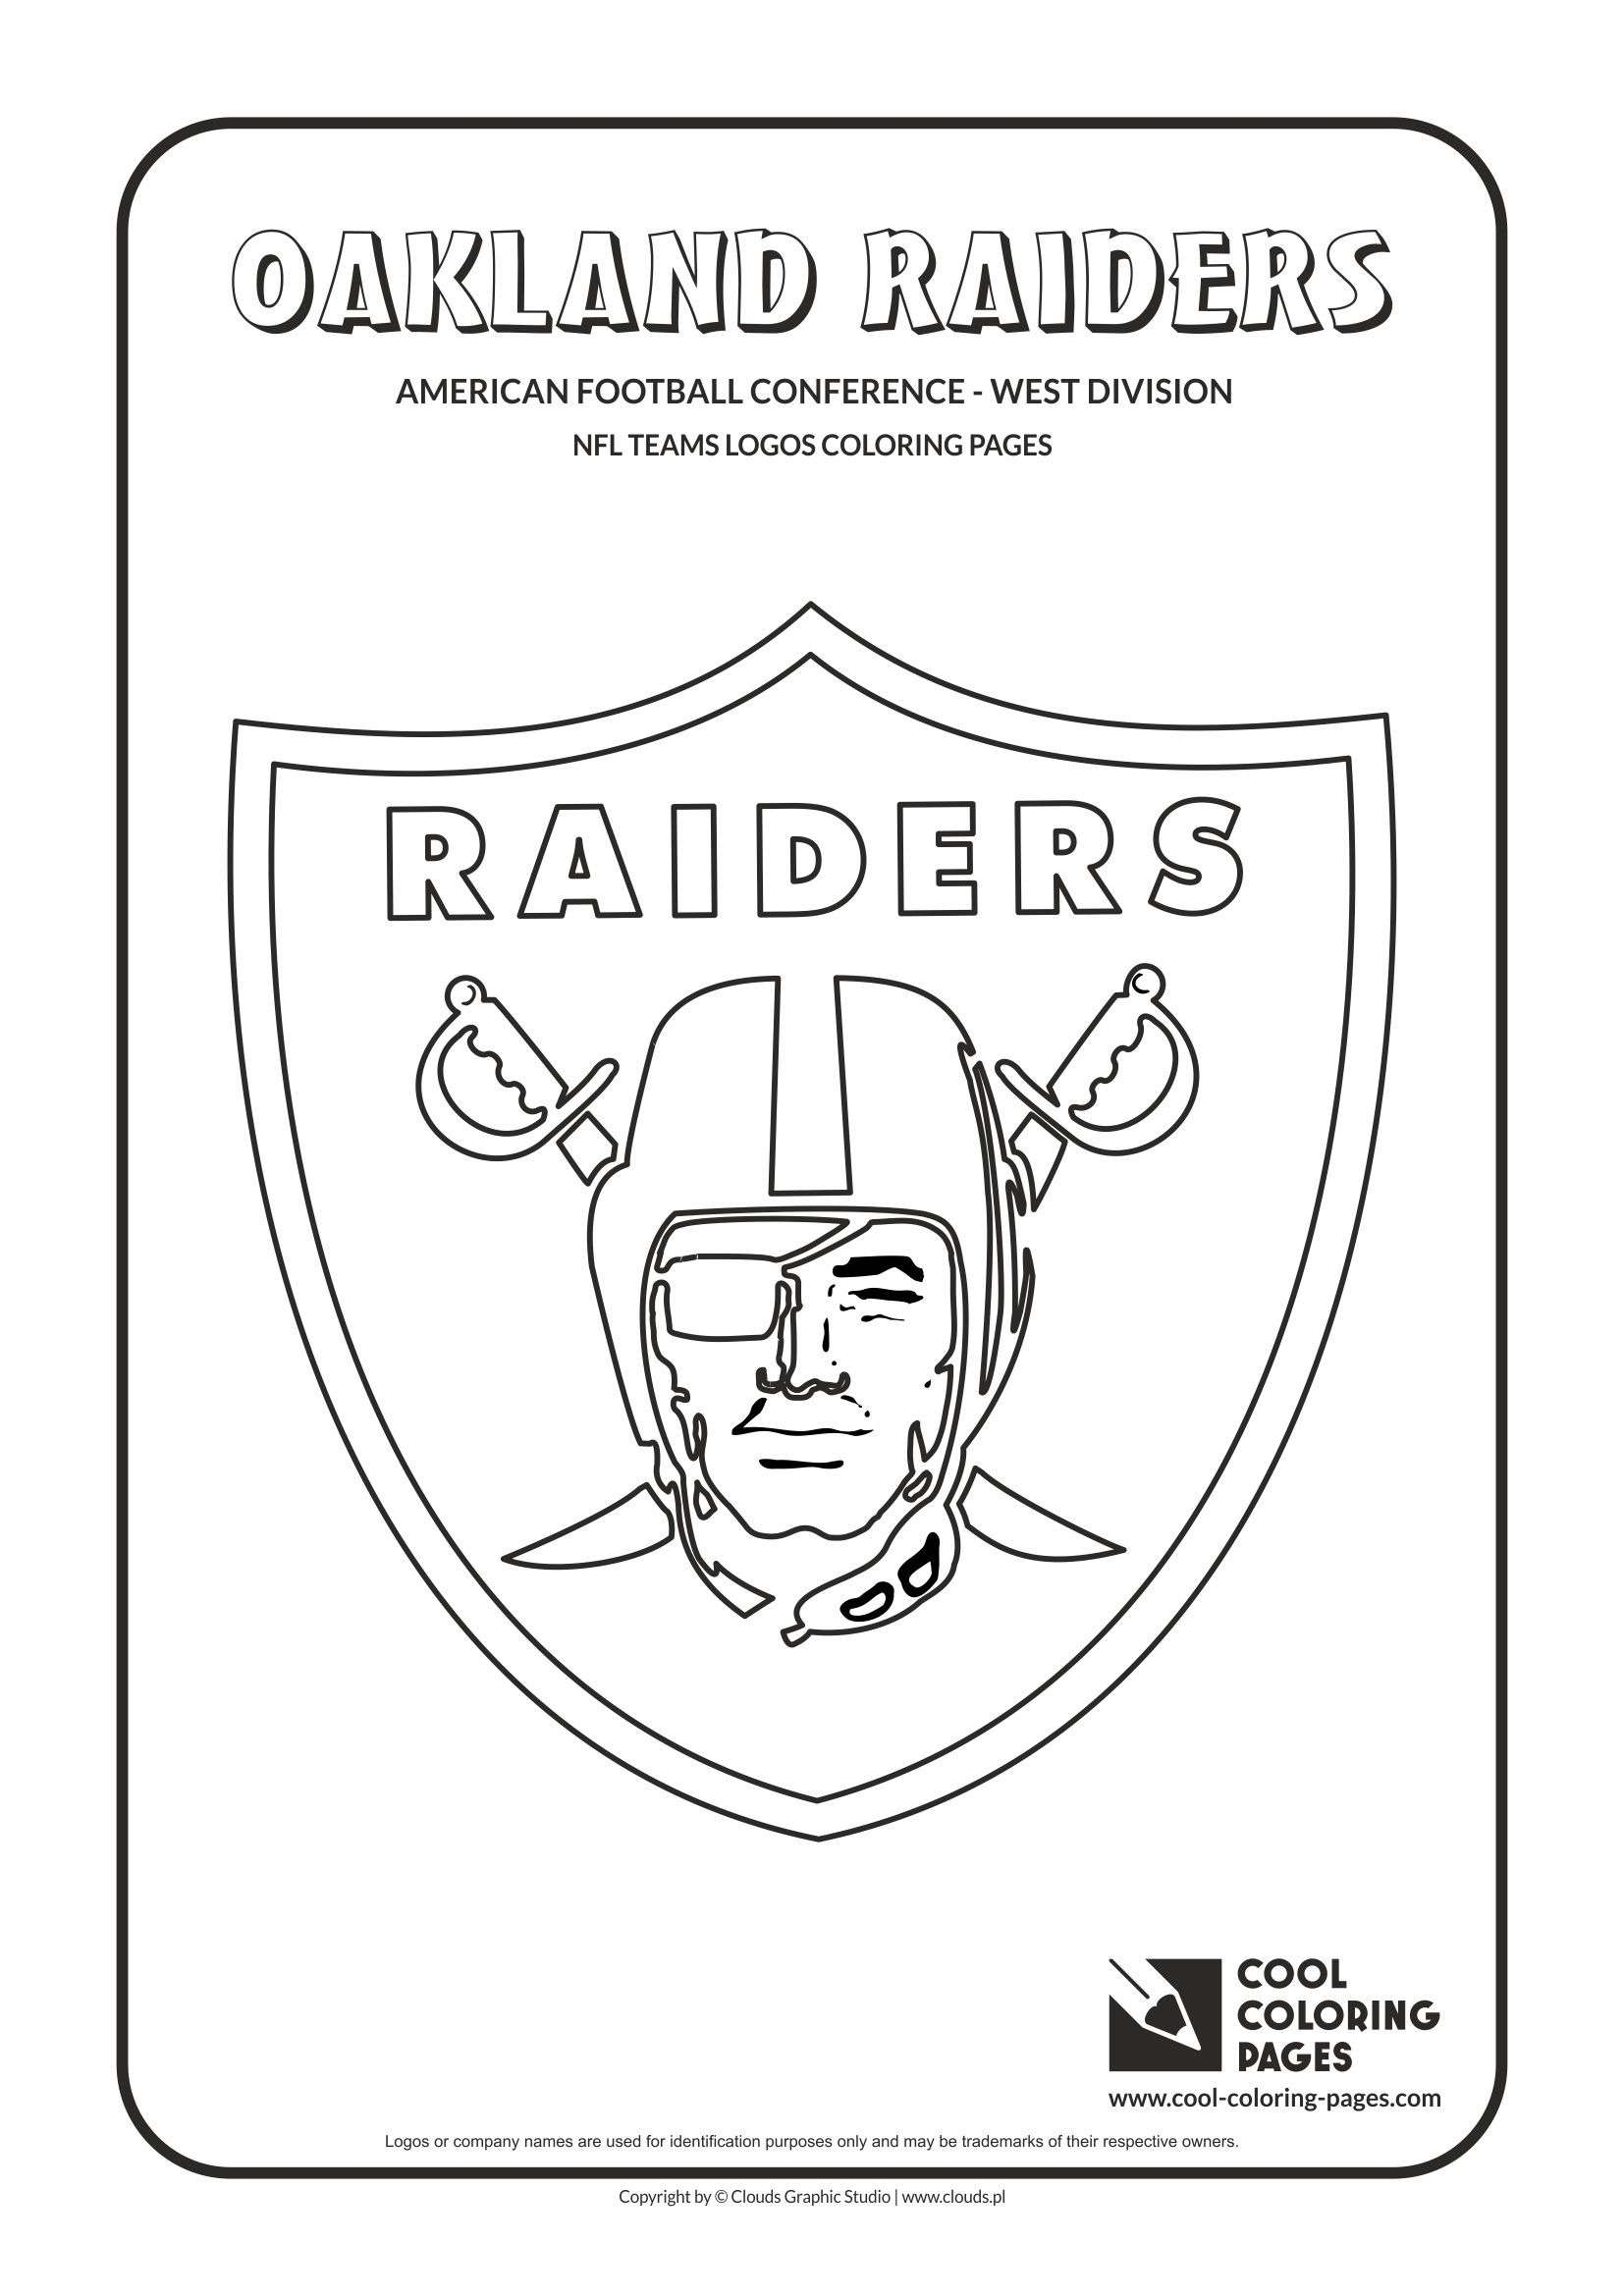 Dallas Cowboys Coloring Pages to Print  Printable 13d - Free For kids